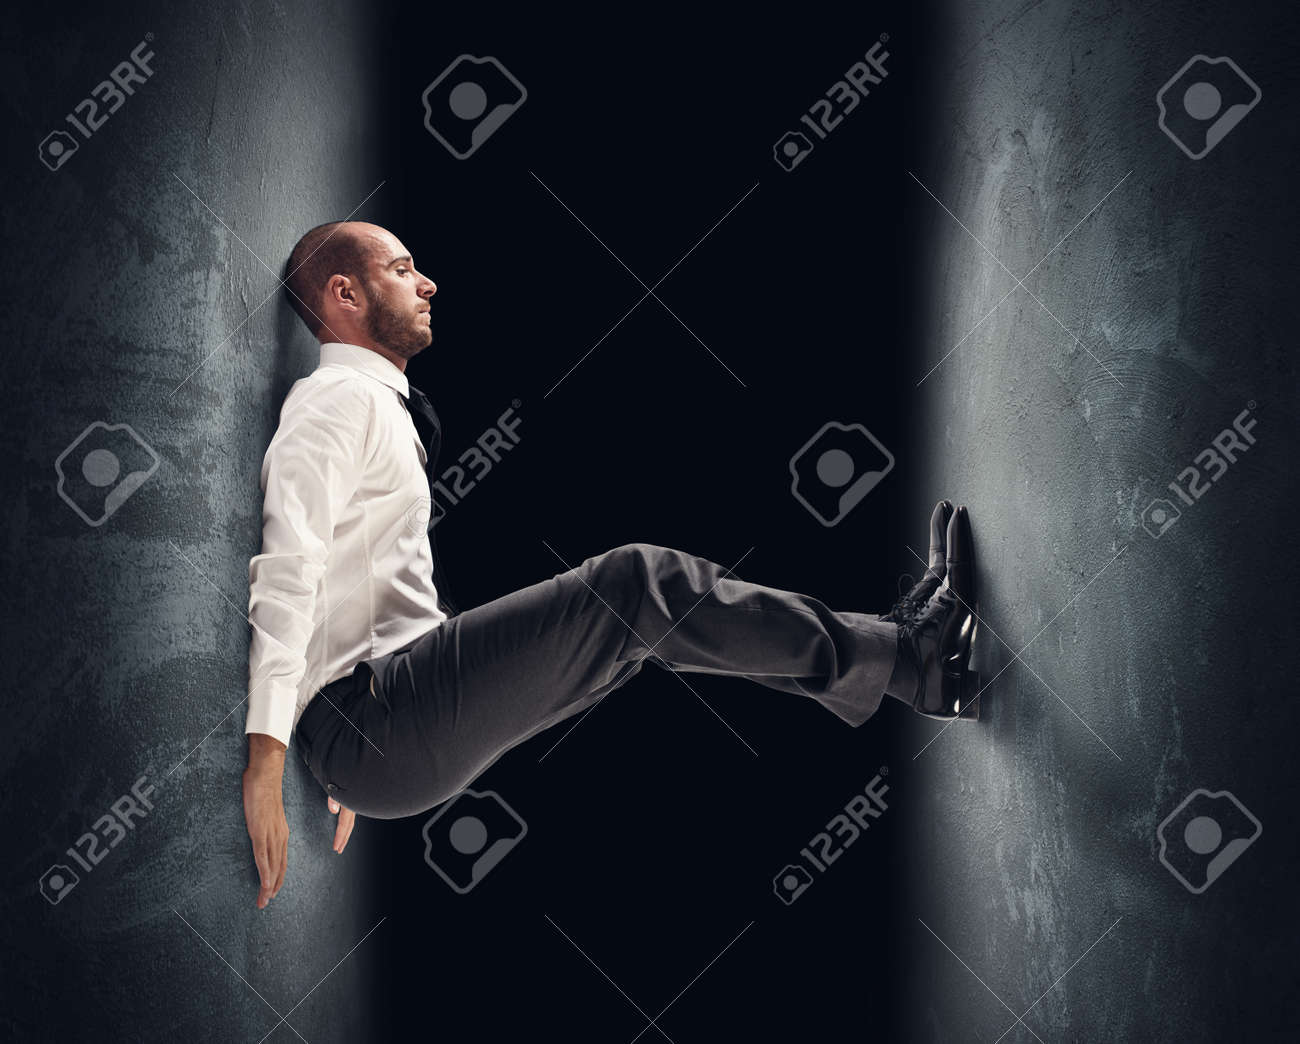 Concept of a stressed businessman under pressure Stock Photo - 26459582